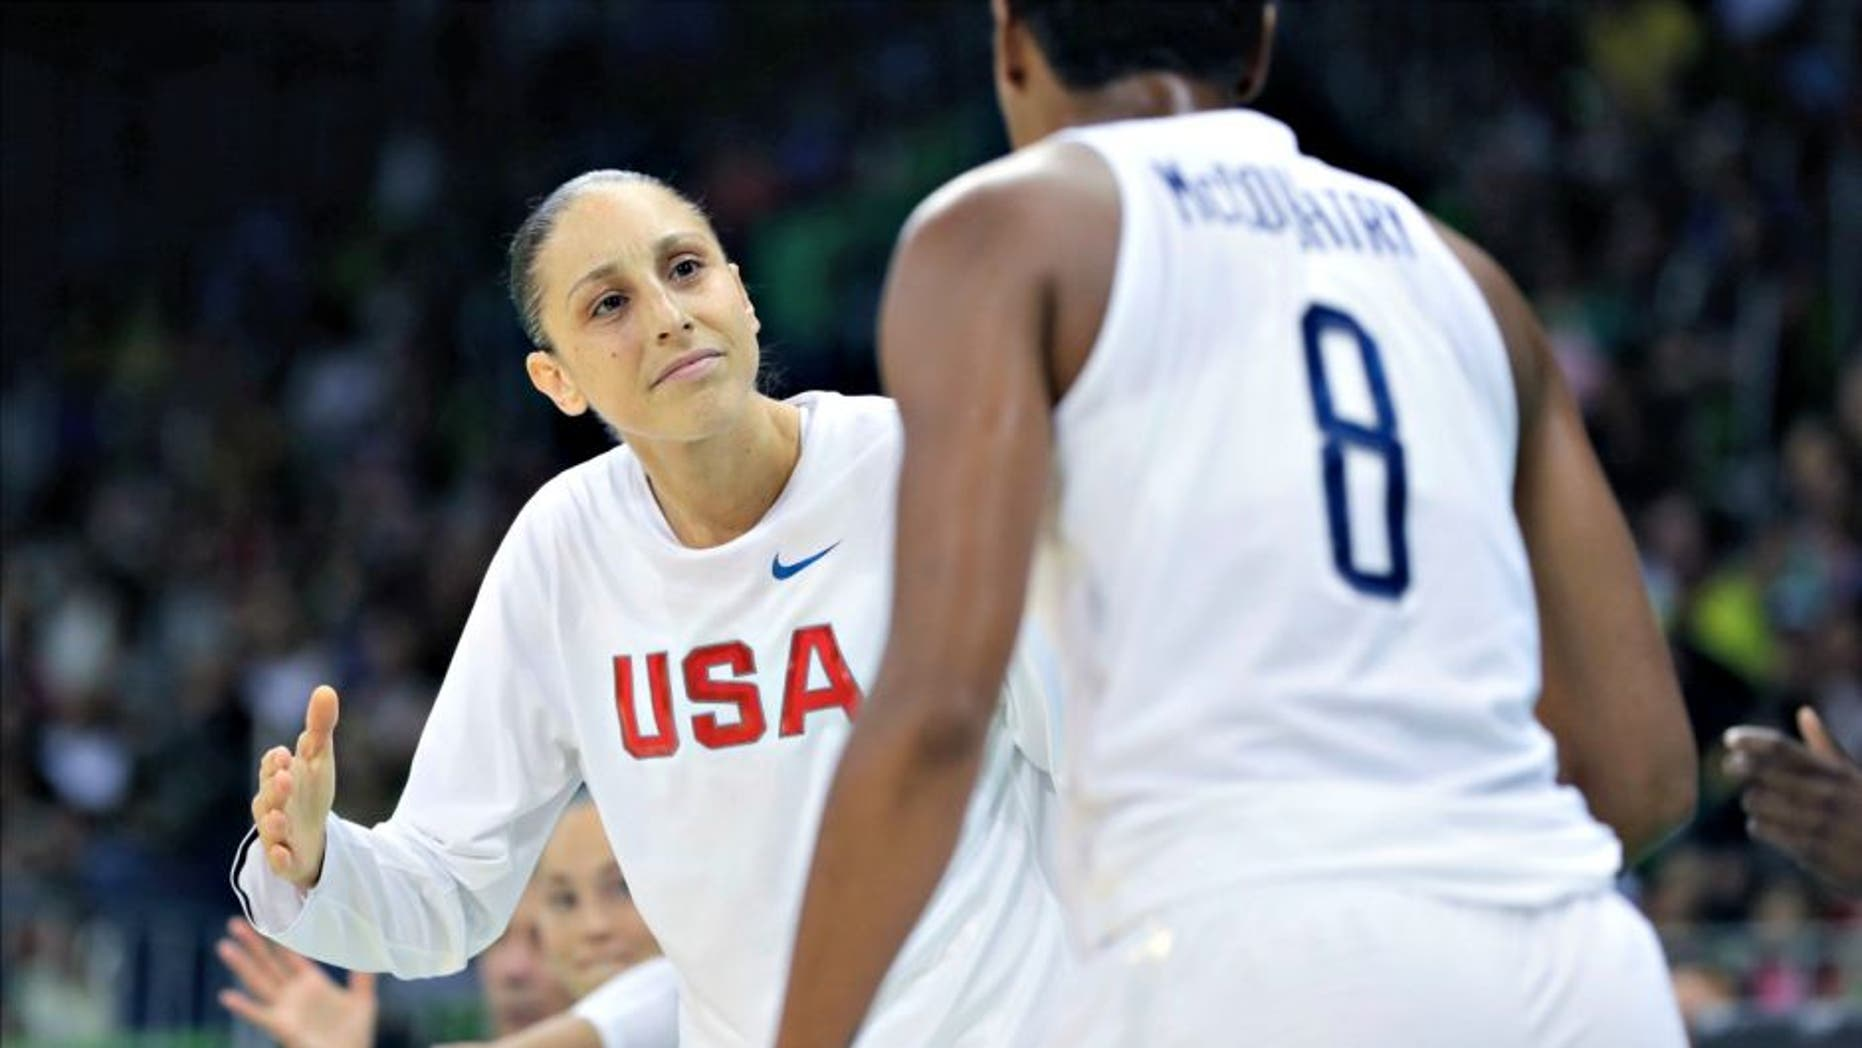 United States guard Diana Taurasi greets teammate Angel McCoughtry after a play during the second half of a women's basketball game against Senegal at the Youth Center at the 2016 Summer Olympics in Rio de Janeiro, Brazil, Sunday, Aug. 7, 2016. The United States defeated Senegal 121-56. (AP Photo/Carlos Osorio)